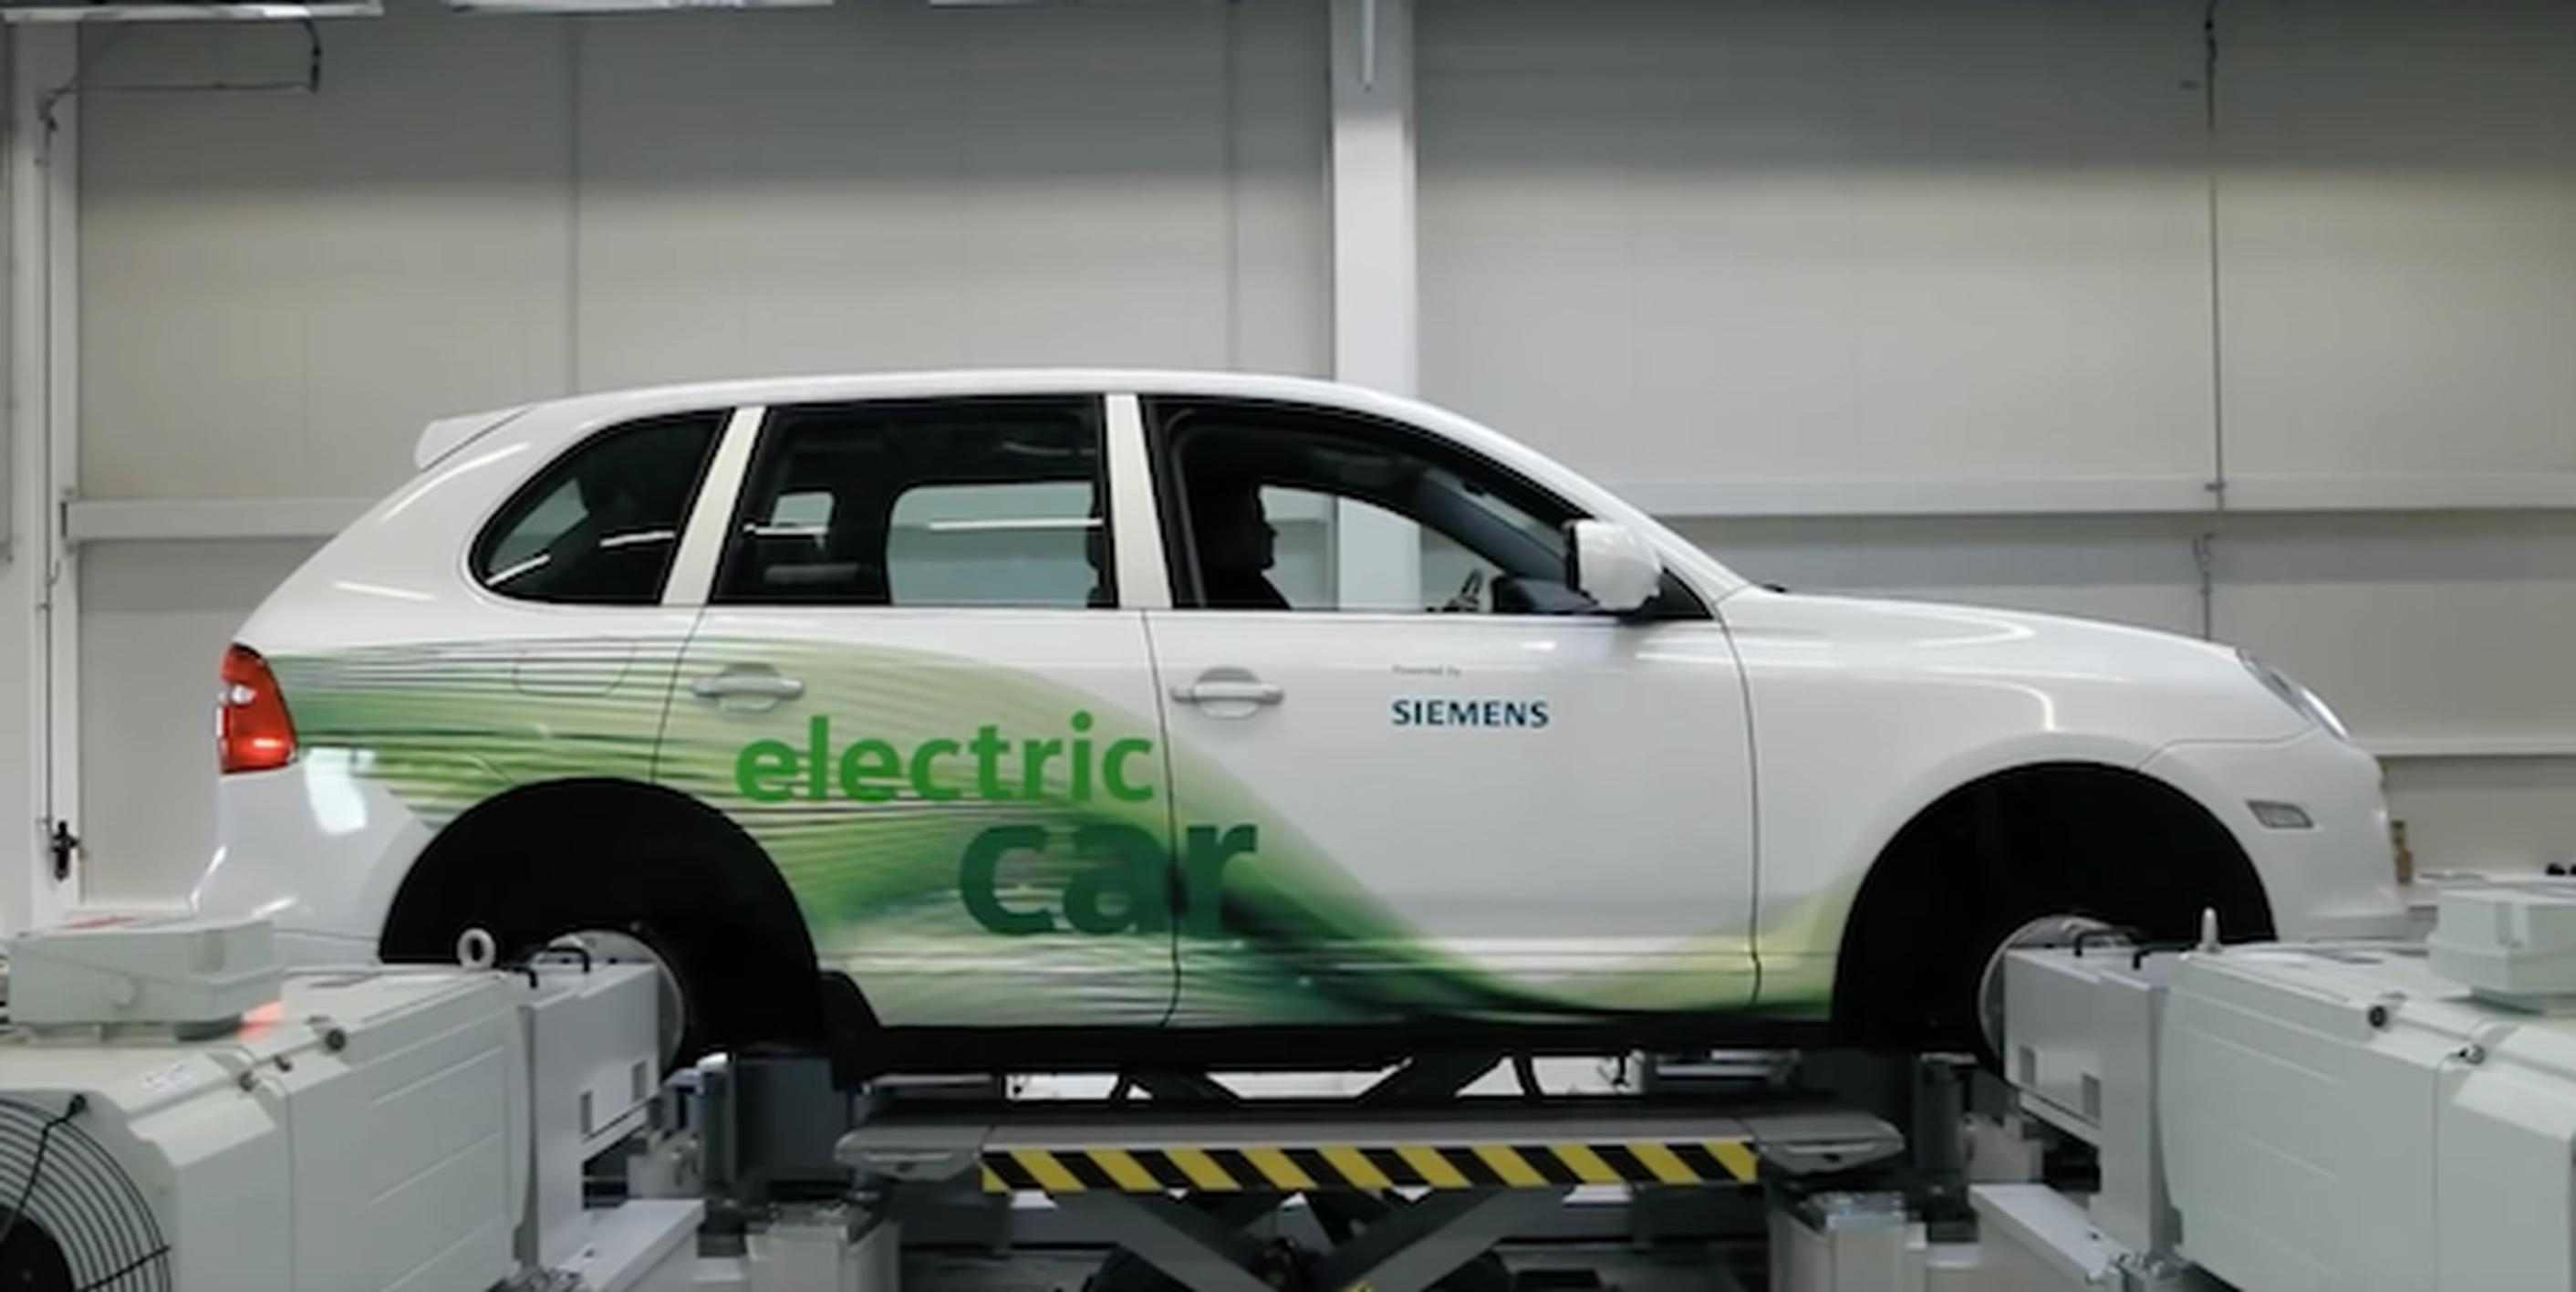 Siemens colloborated with Volvo on developing  the XC90 T8 Twin Engine powertrain